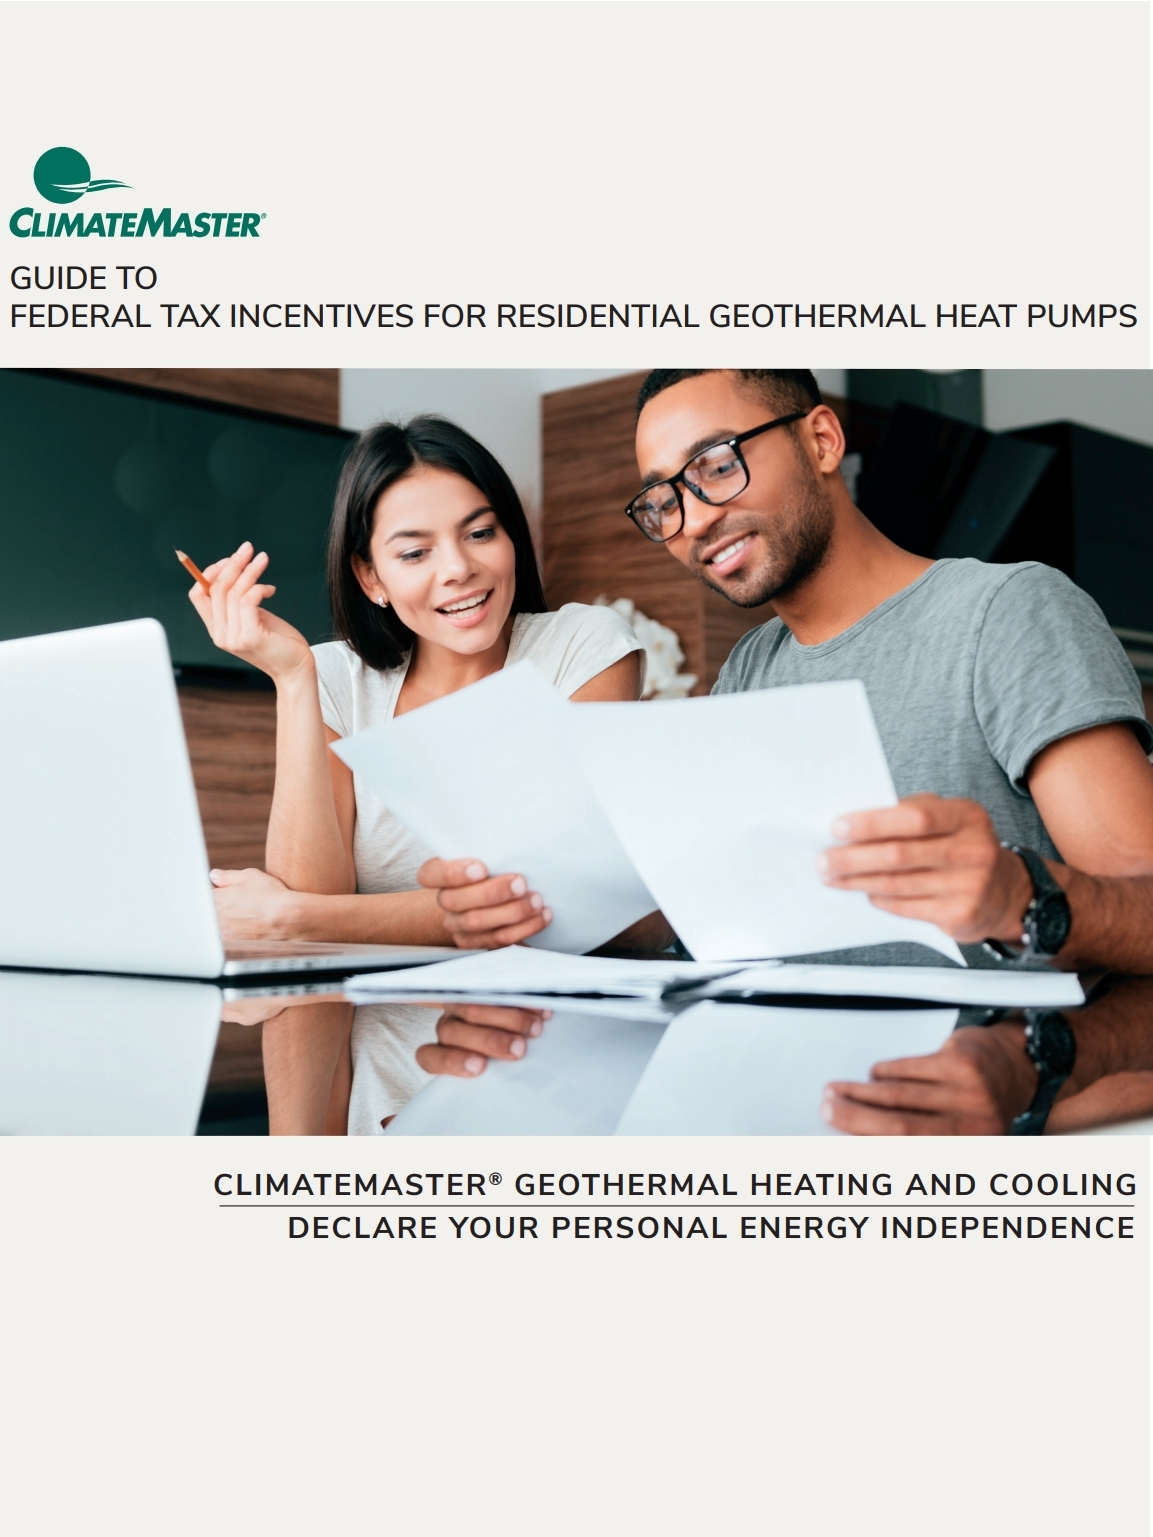 ClimateMaster_Guide to Federal Tax Incentives